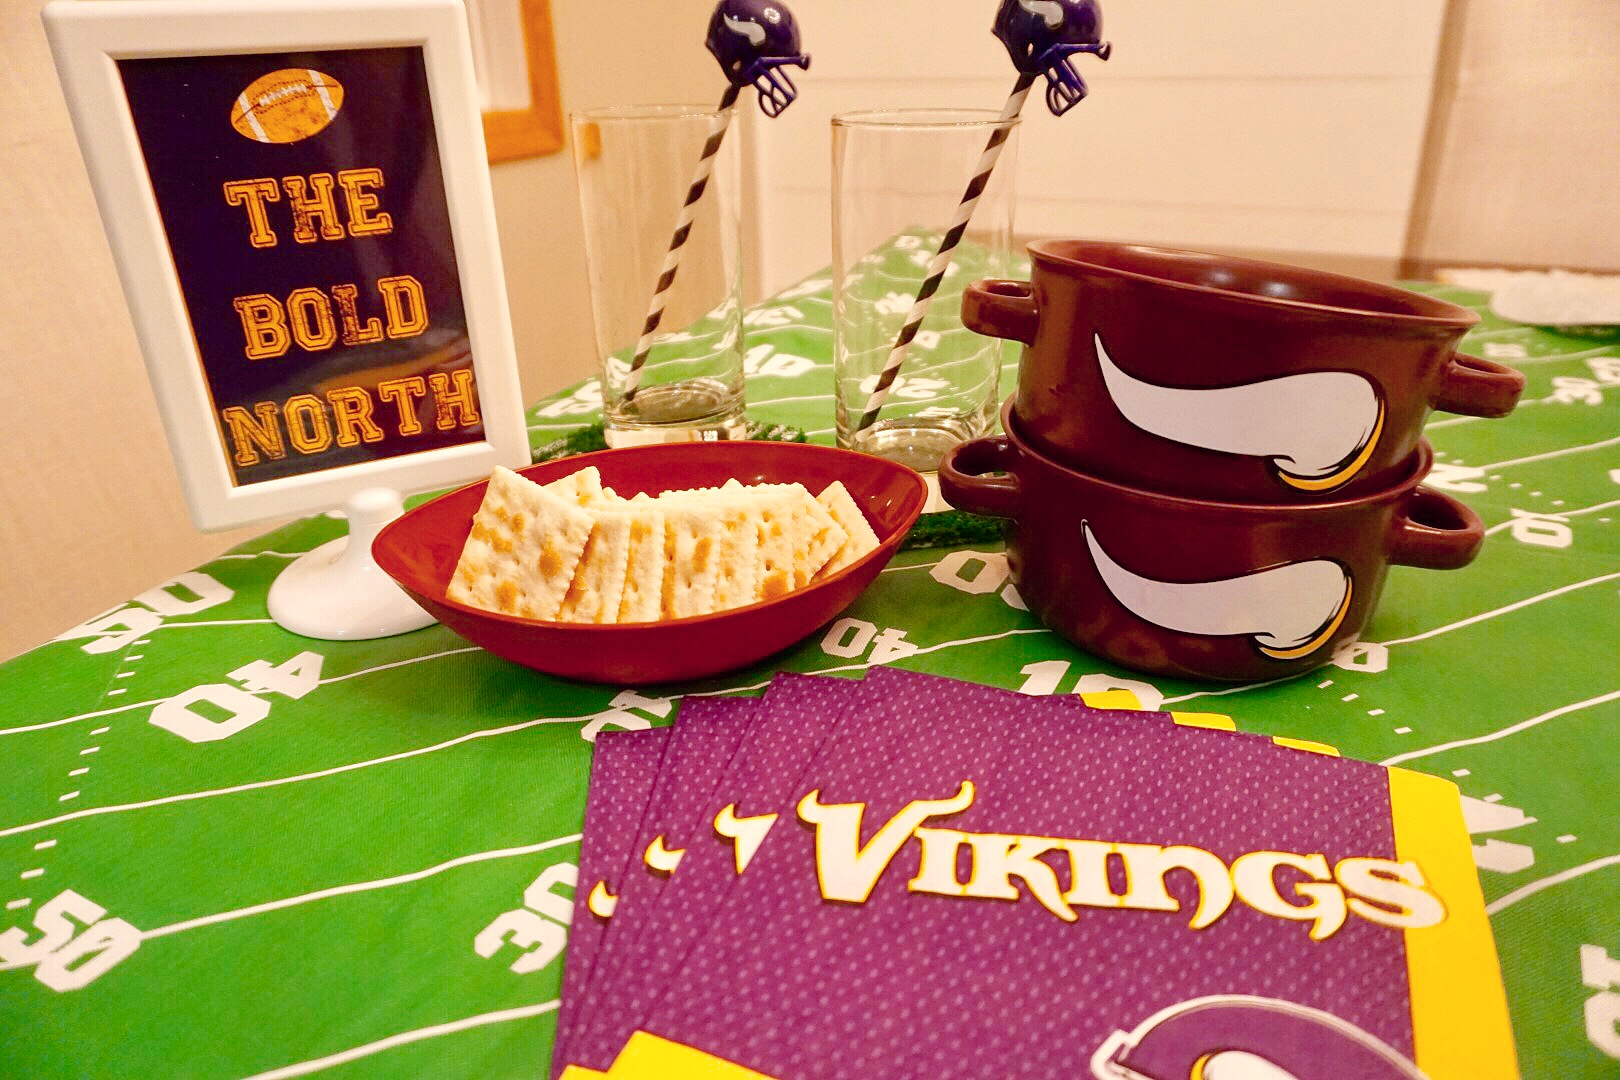 Minnesota Vikings soup bowls are perfect for game day chili.